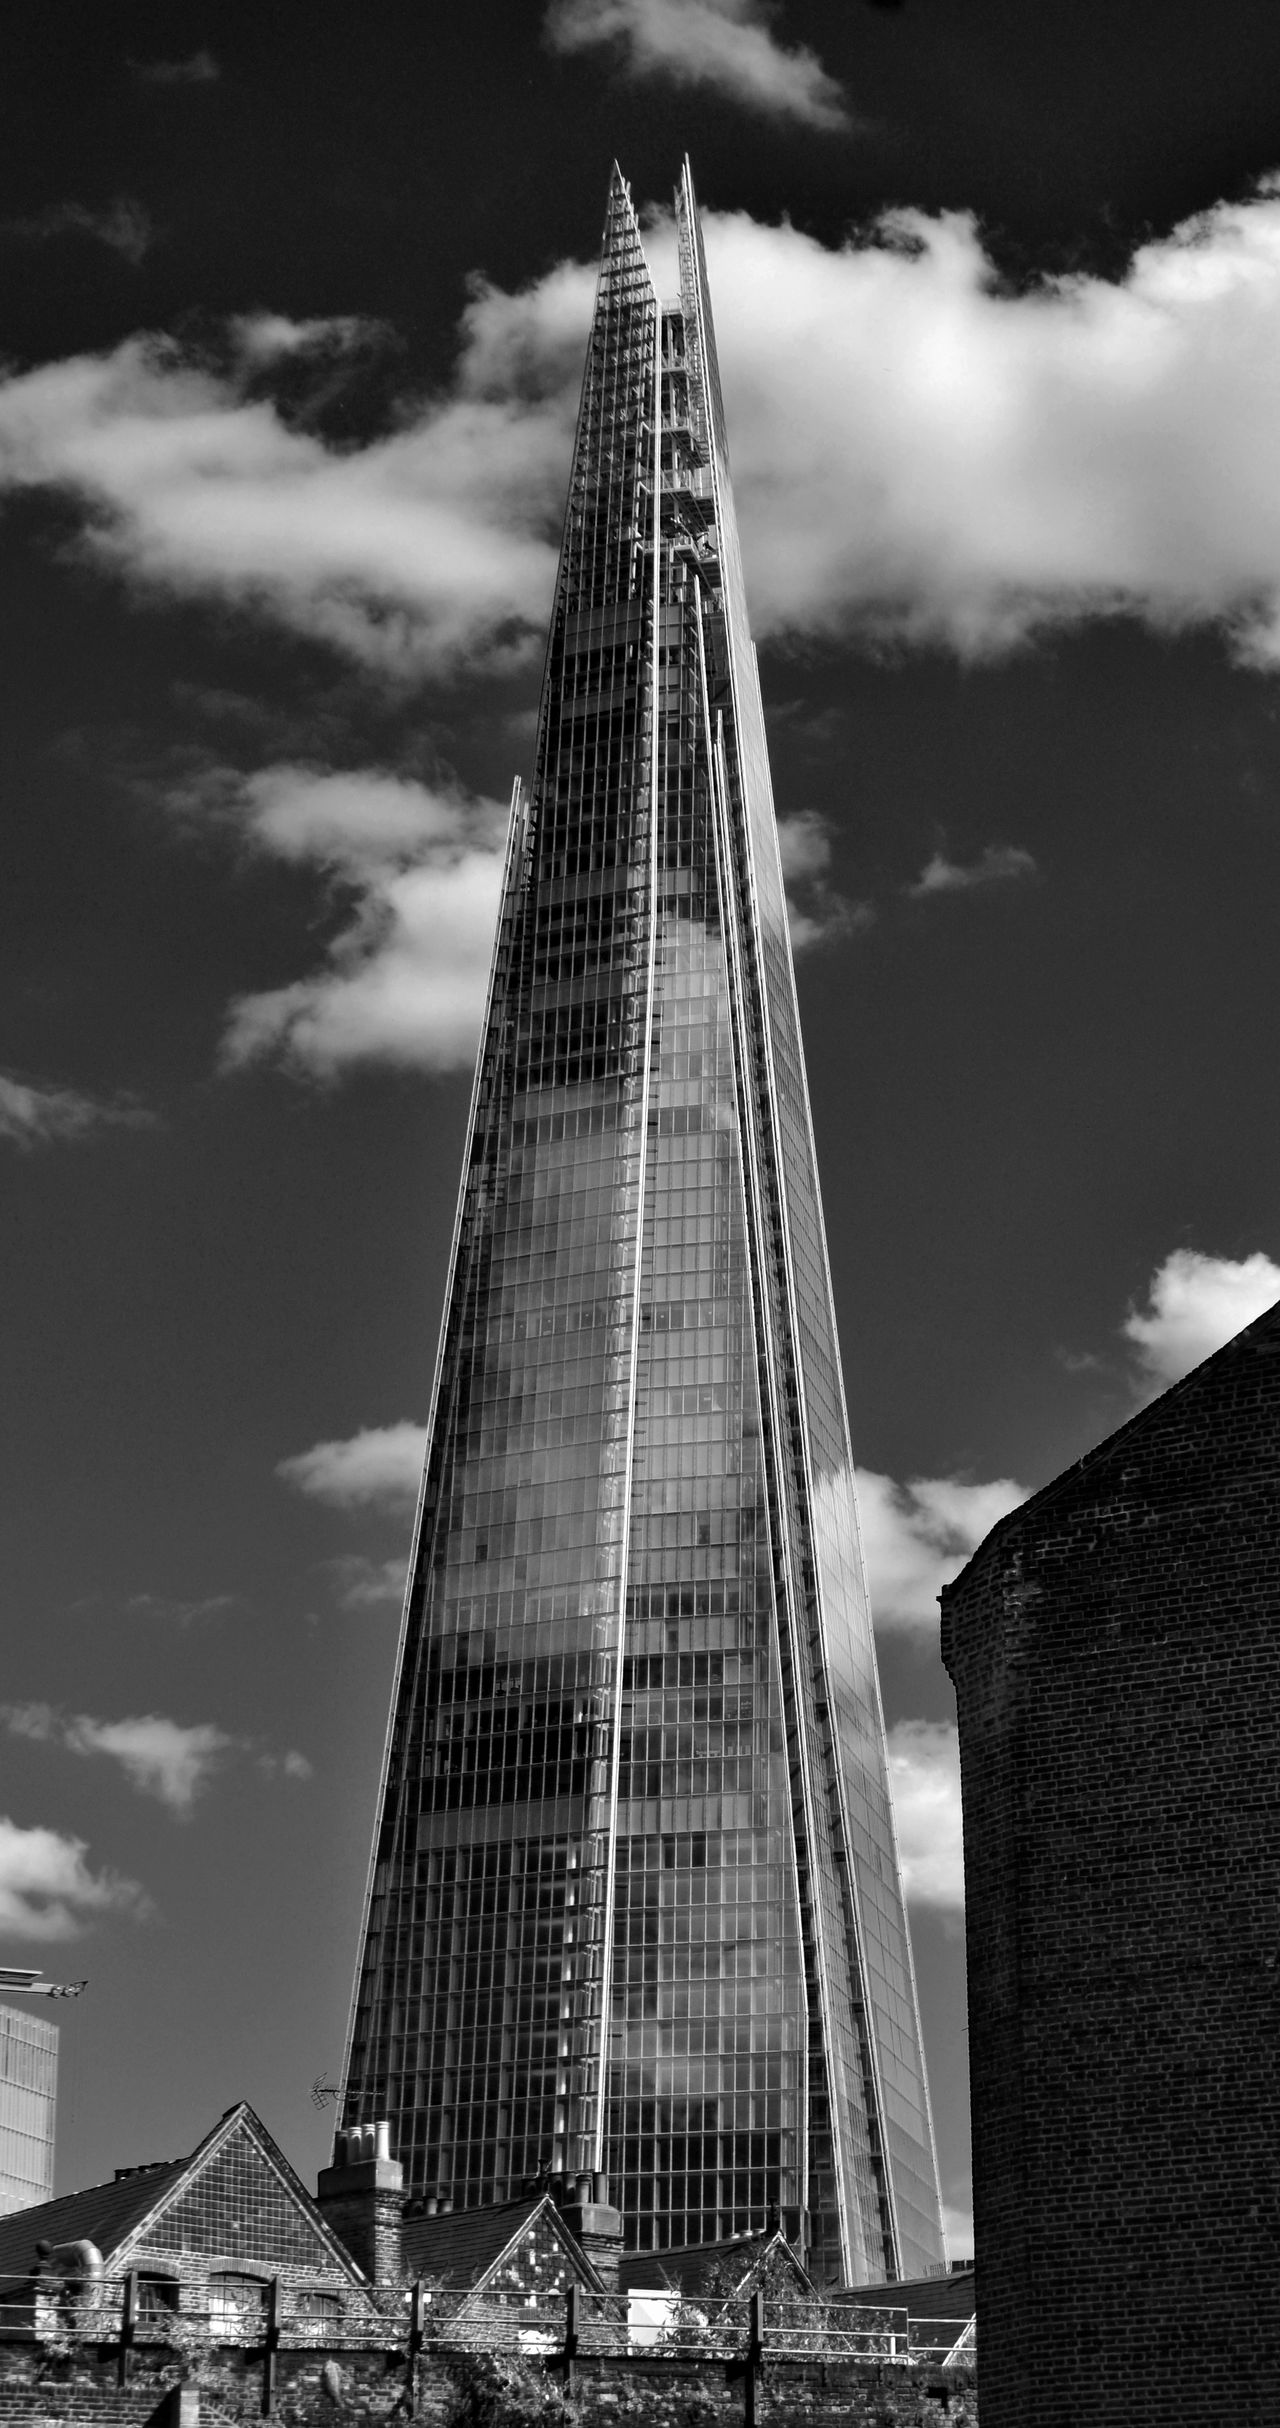 London United Kingdom Architecture No People Tower Sky City Built Structure Skyscraper The Shard Black And White Glass Travel Low Angle View Old And New